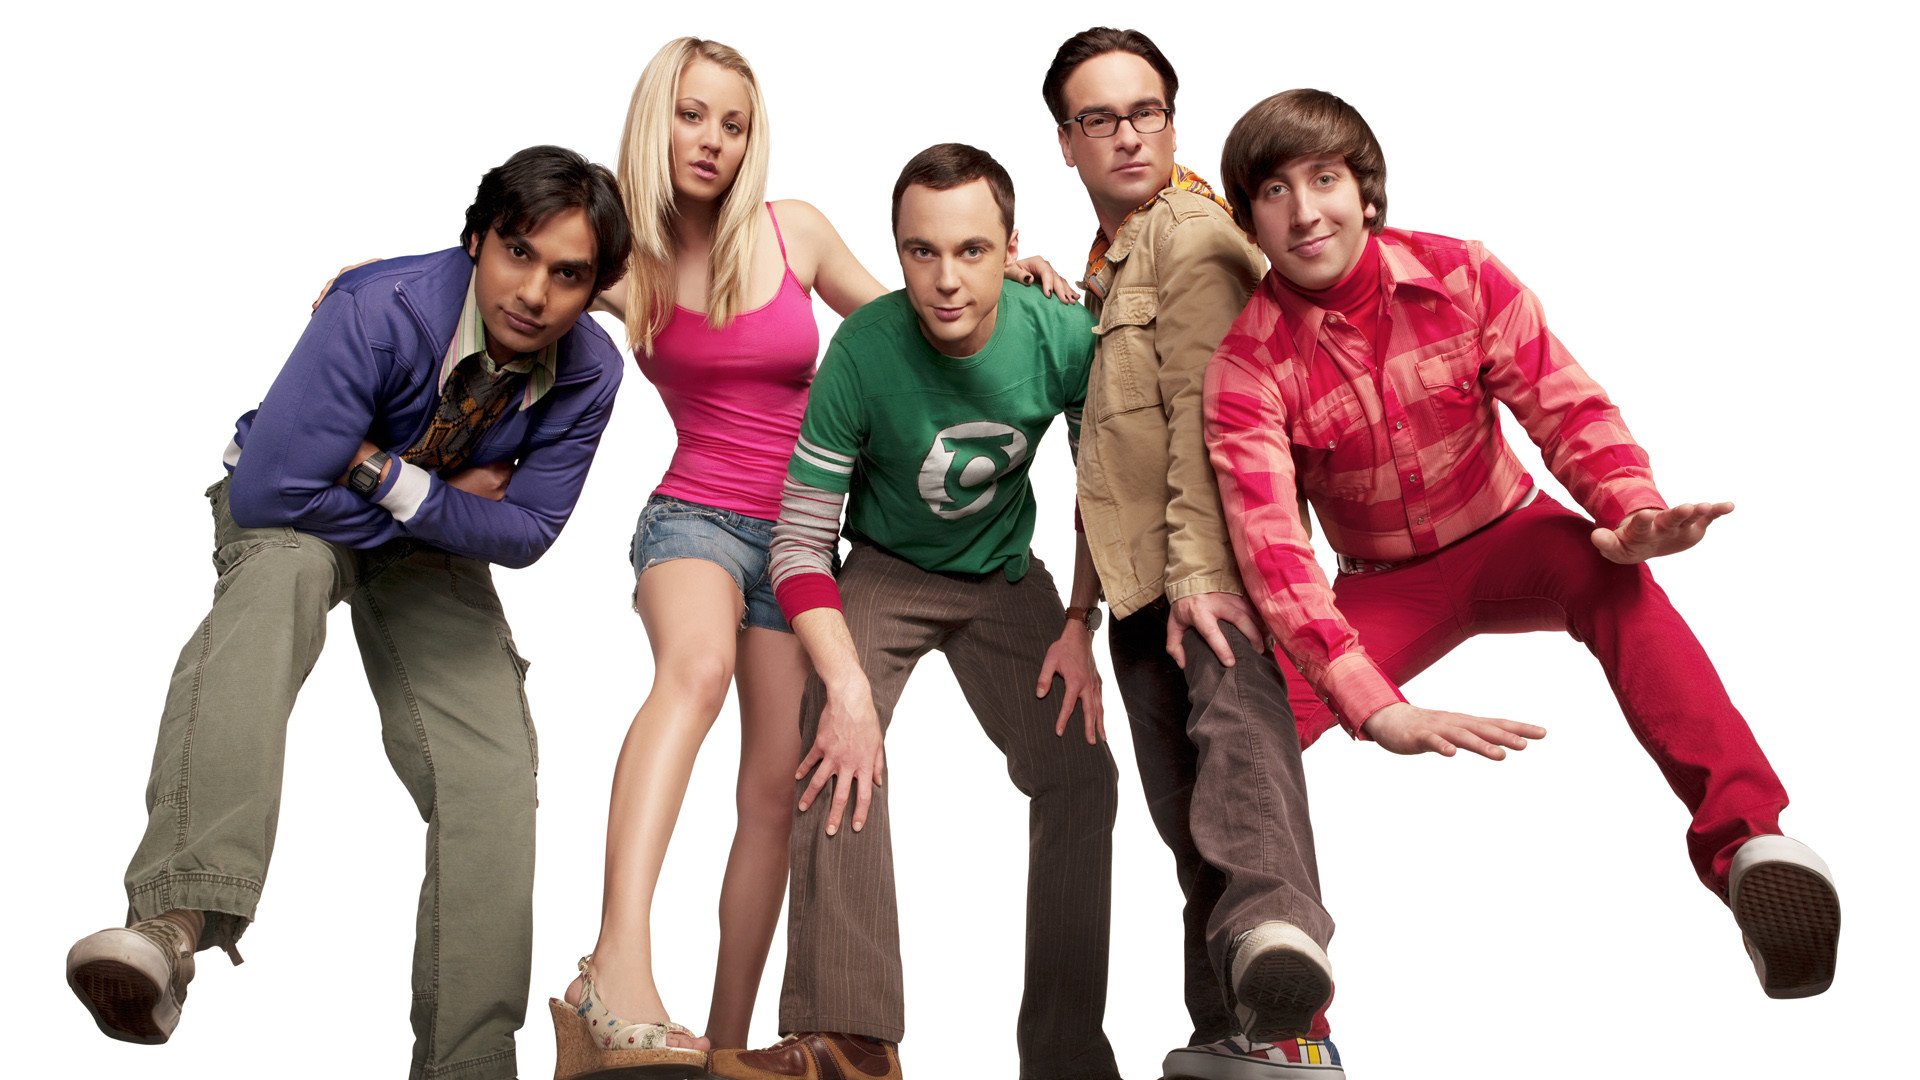 Res: 1920x1080, ... Colorful Big Bang Theory Images High Quality for Laptop ...